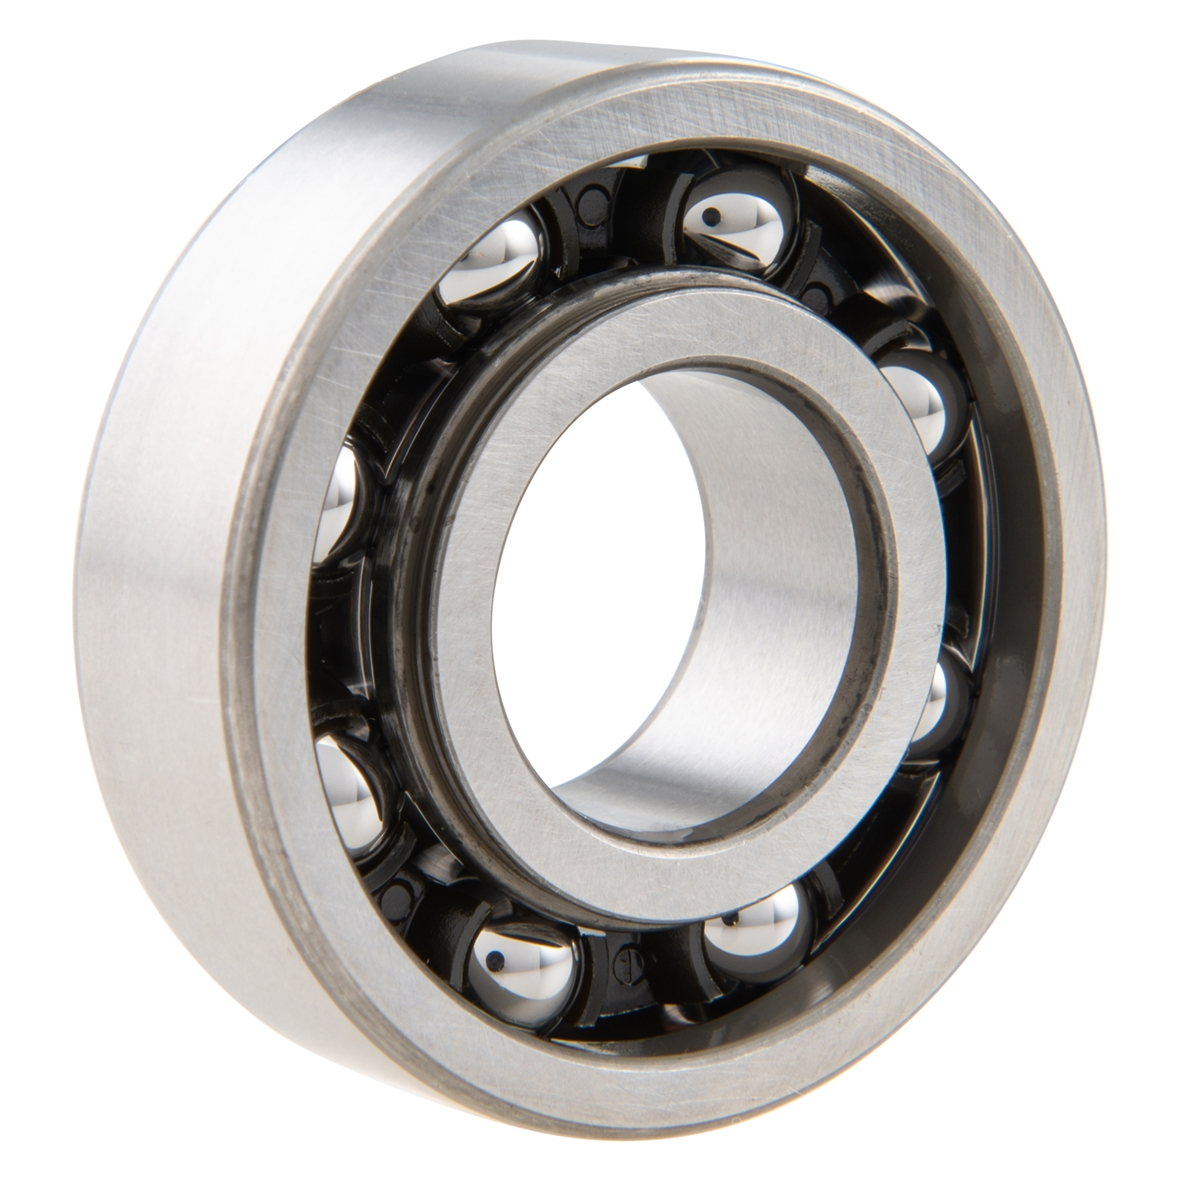 Product Image for 'Ball Bearing driveshaft PIAGGIO 17x40x12 mmTitle'